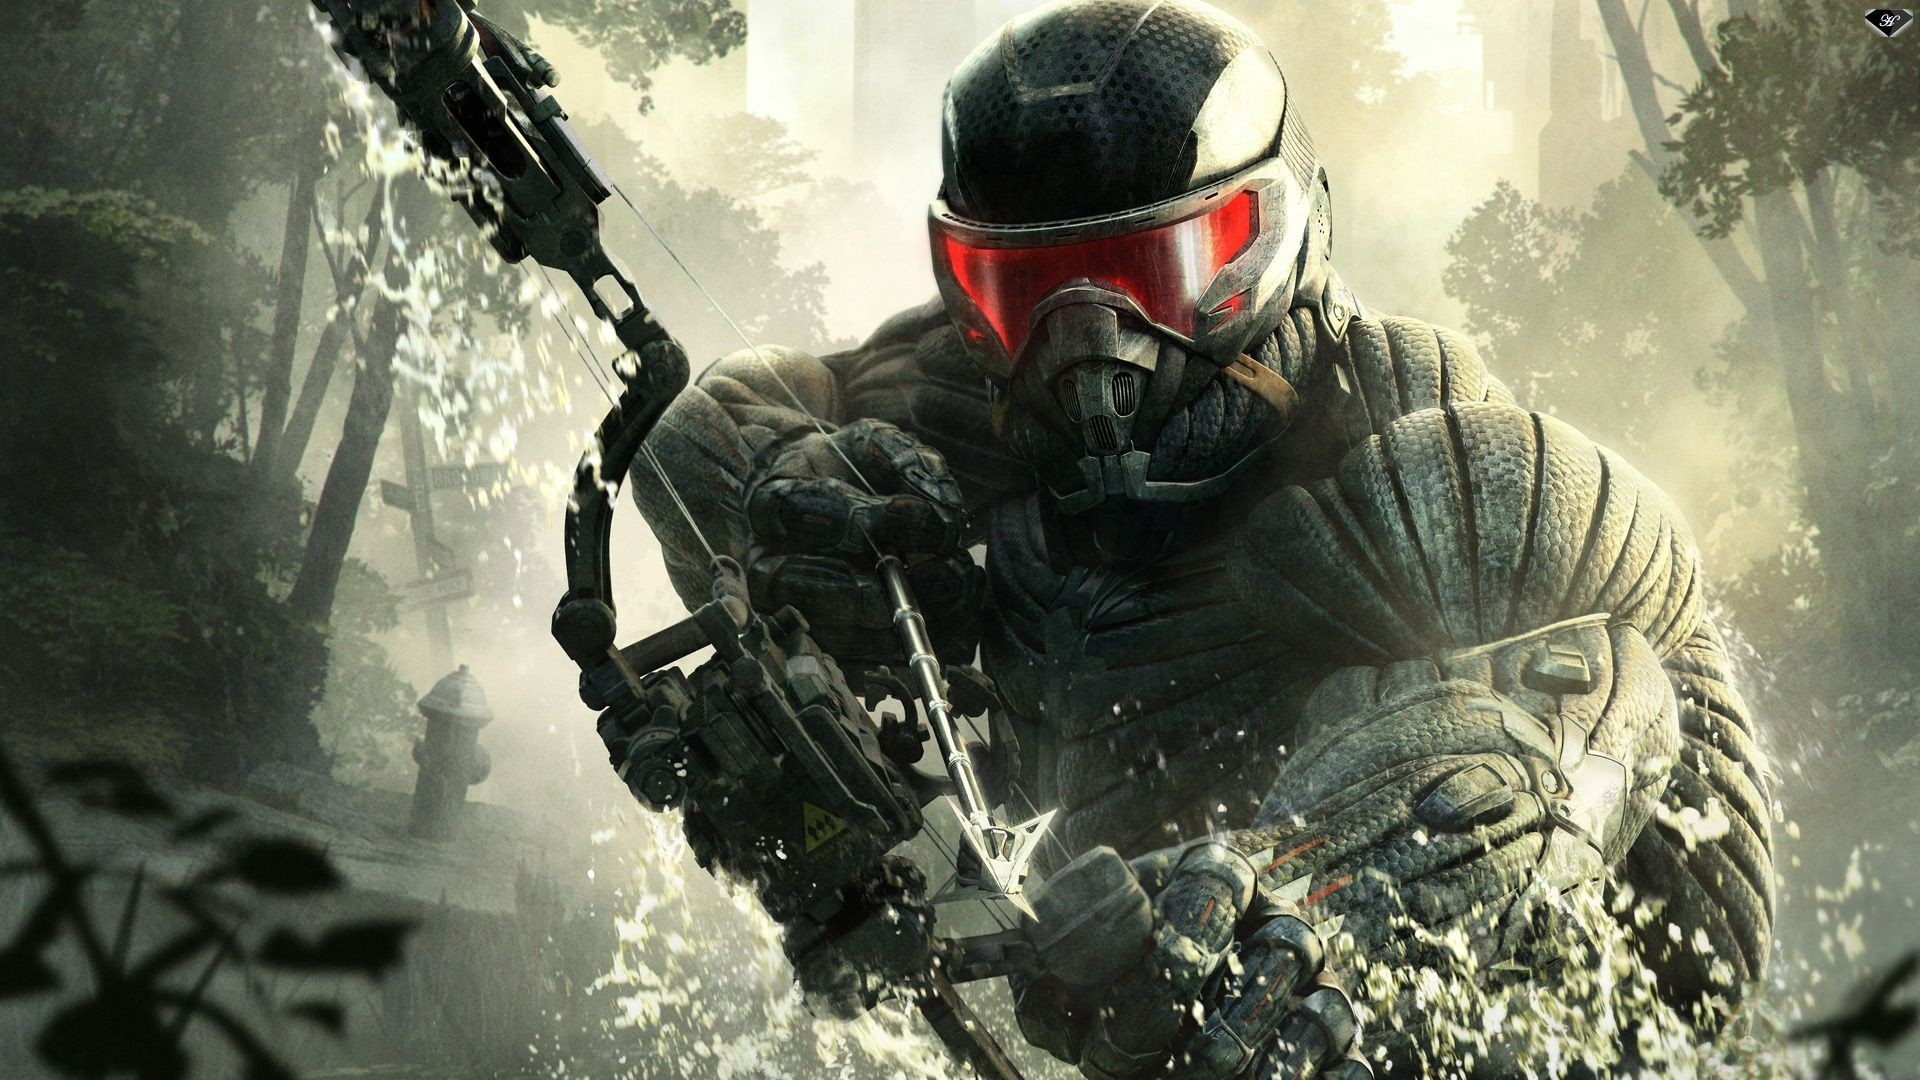 Crysis 3 Video Game Wallpapers